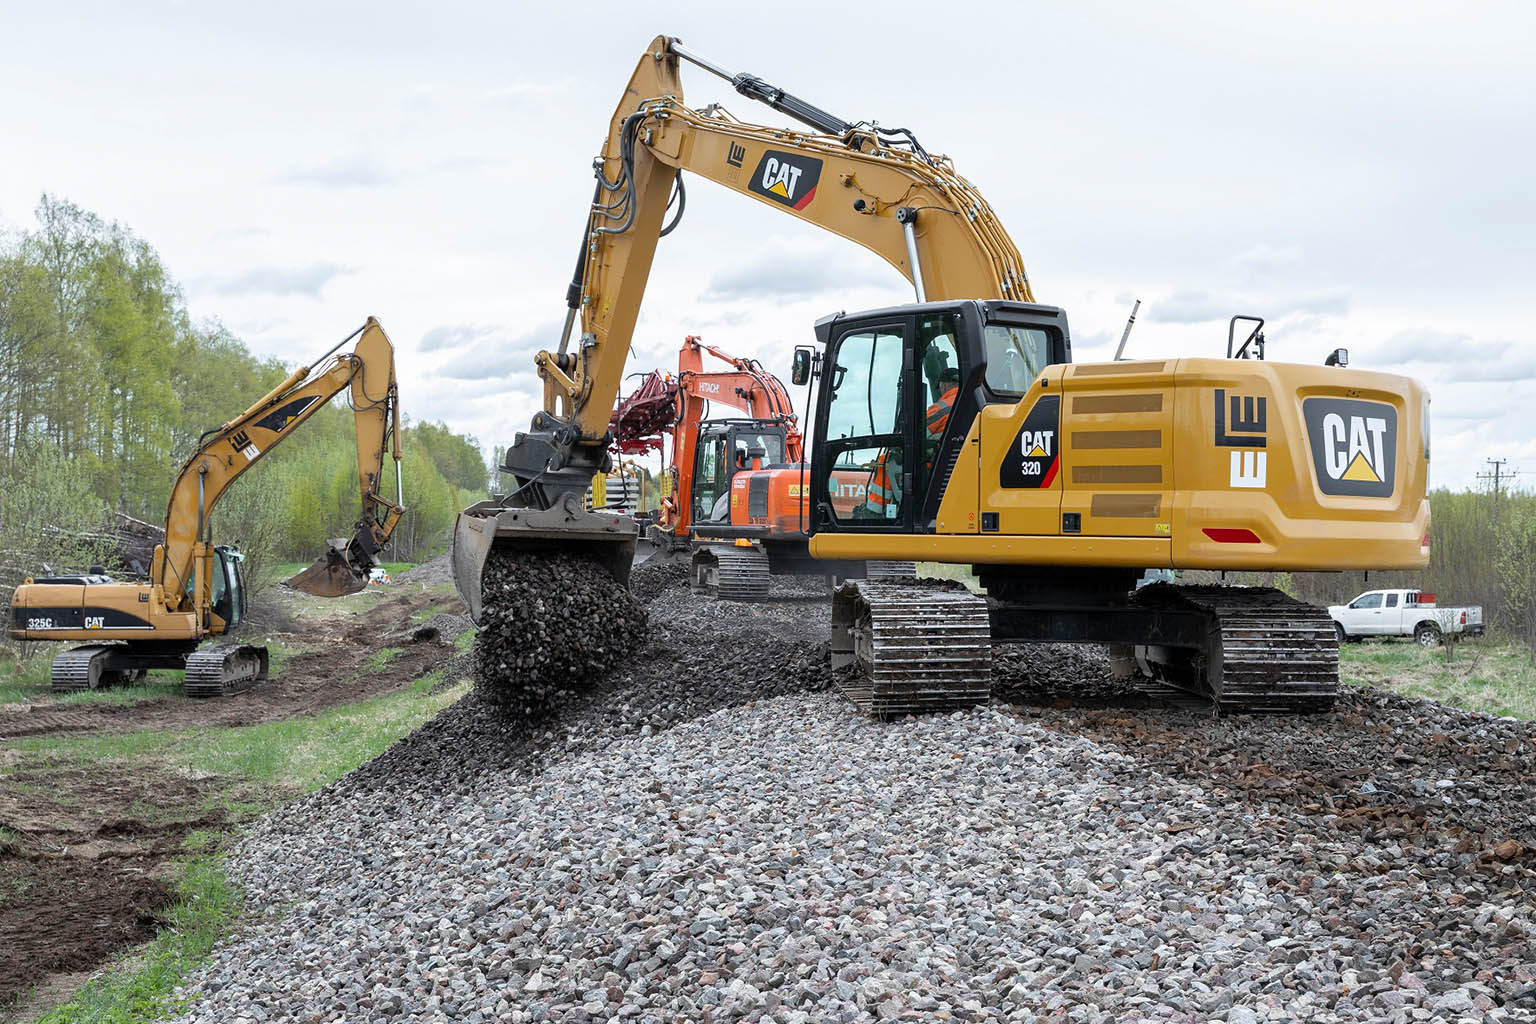 Construction and maintenance of tracks and infrastructure